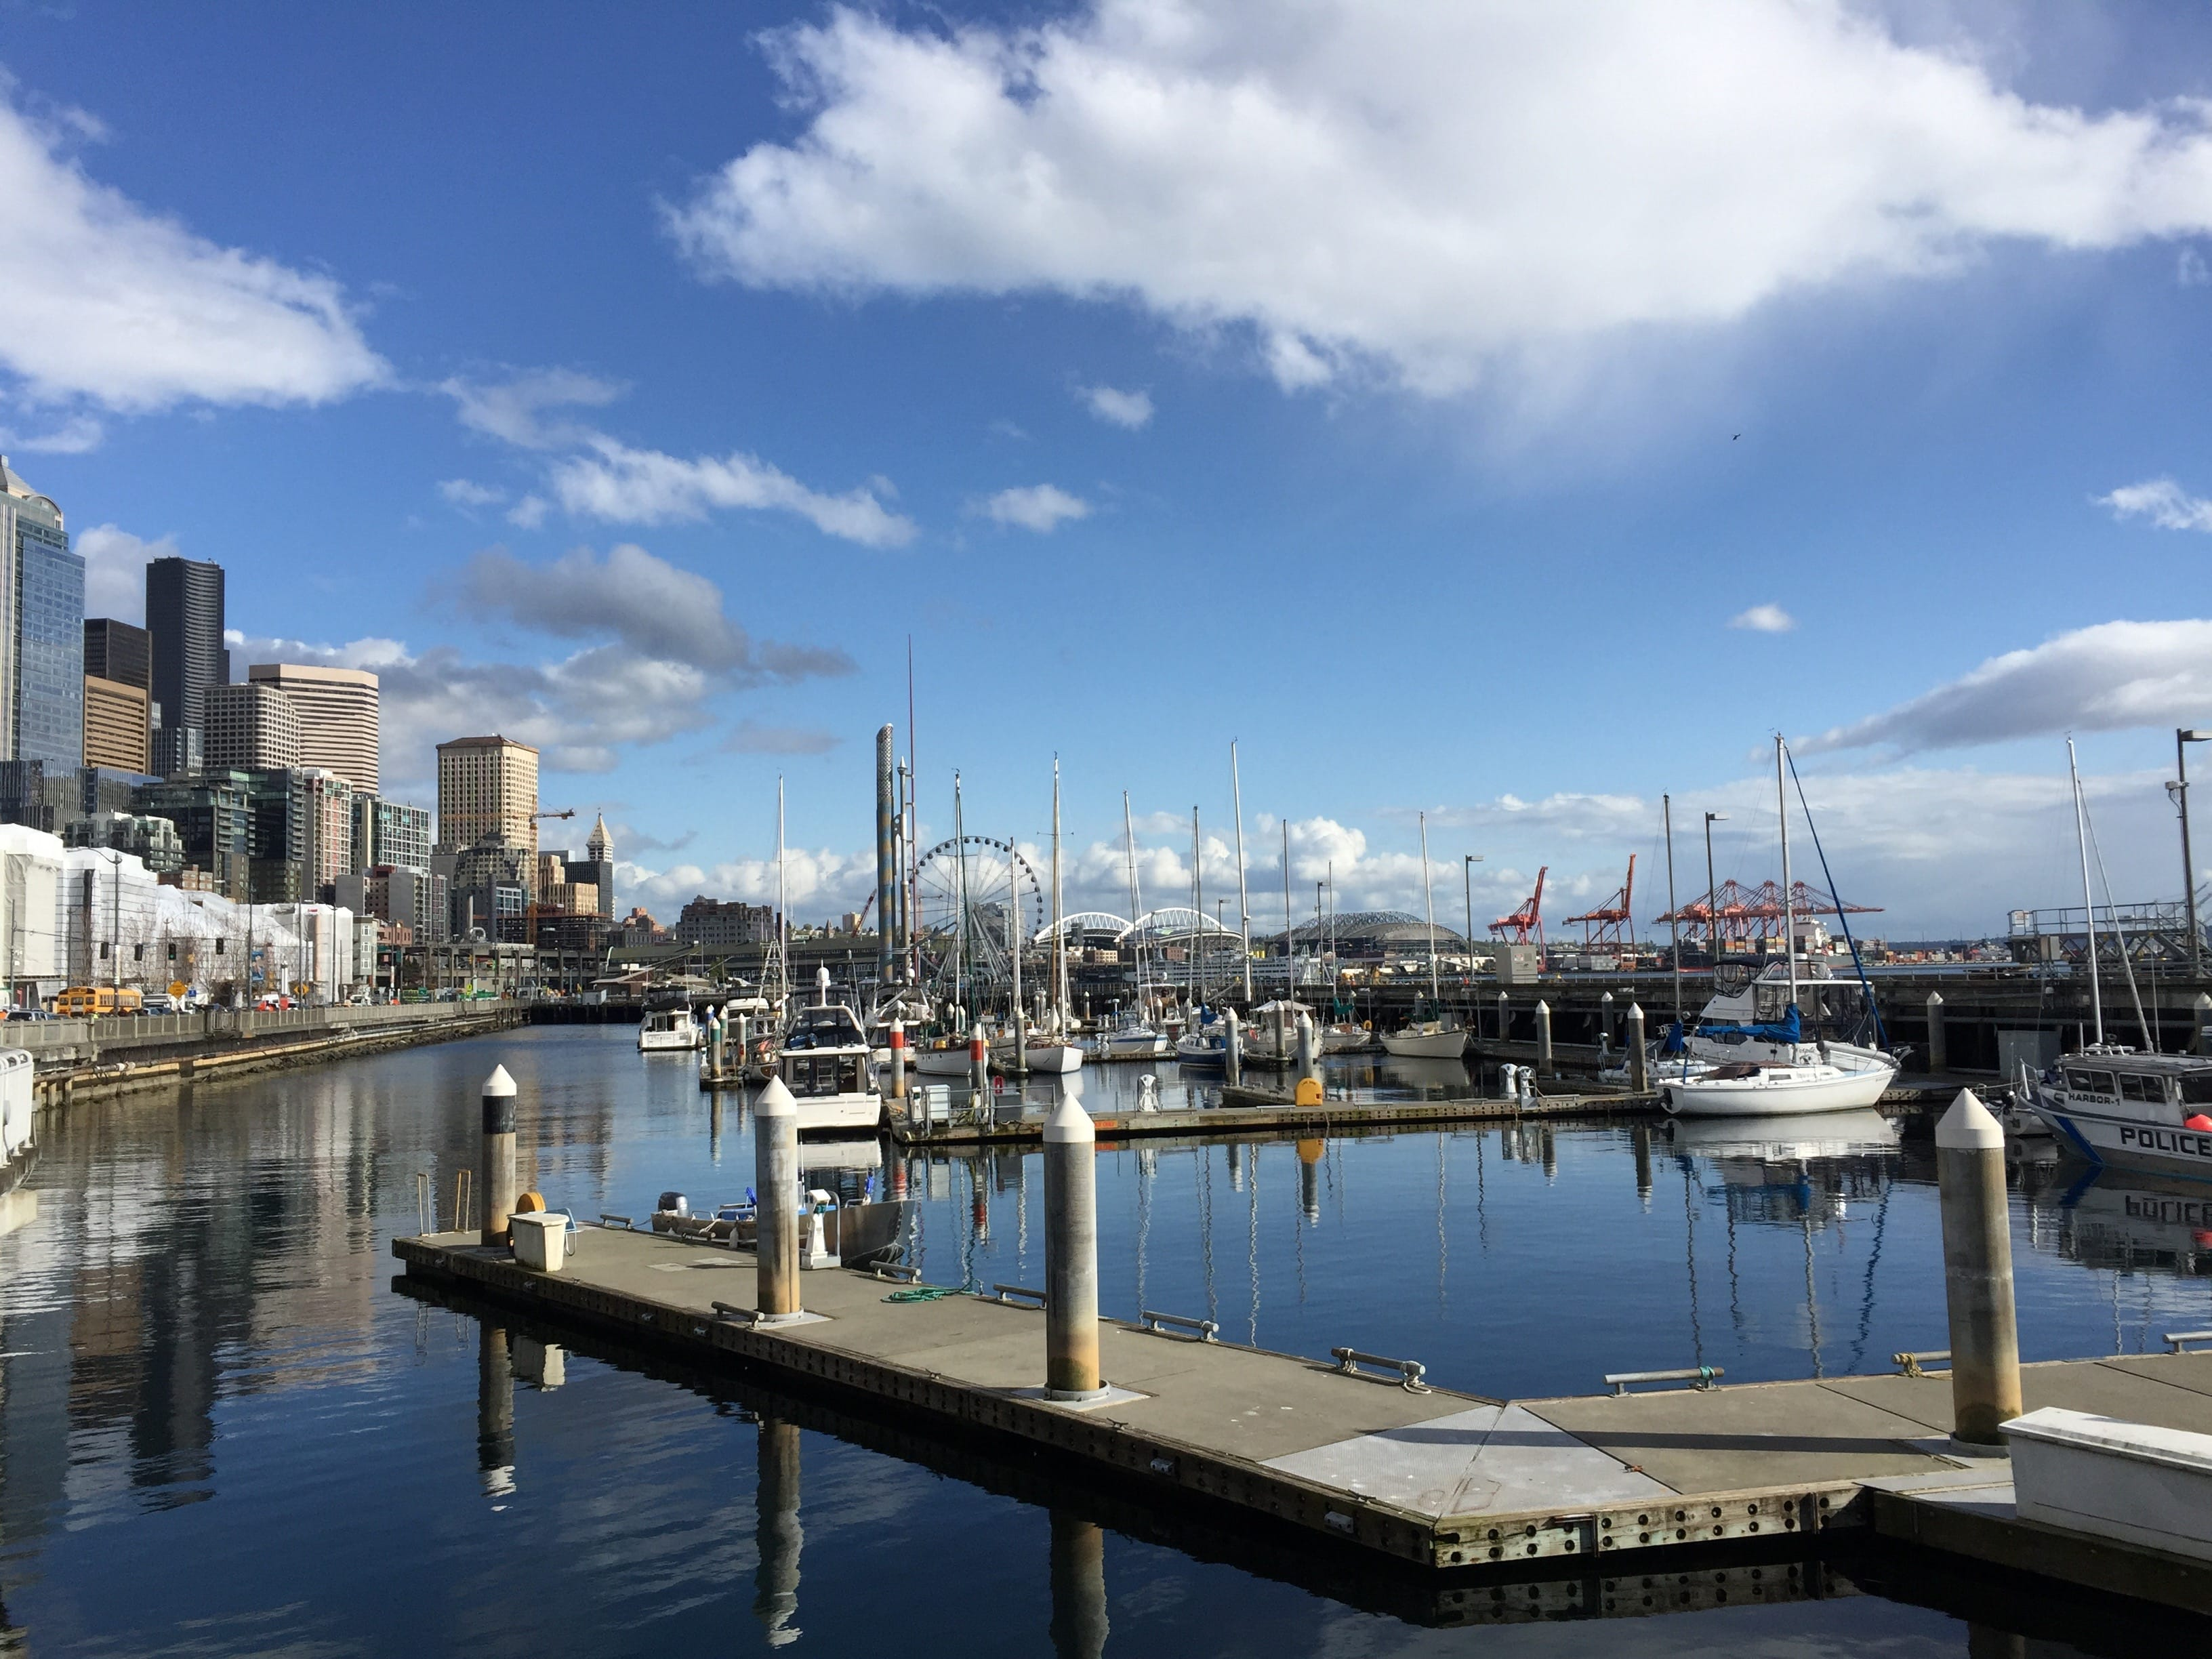 As our time in Seattle was coming to an end, we made sure to take a long walk by the water to check out the famous harbors of Seattle.